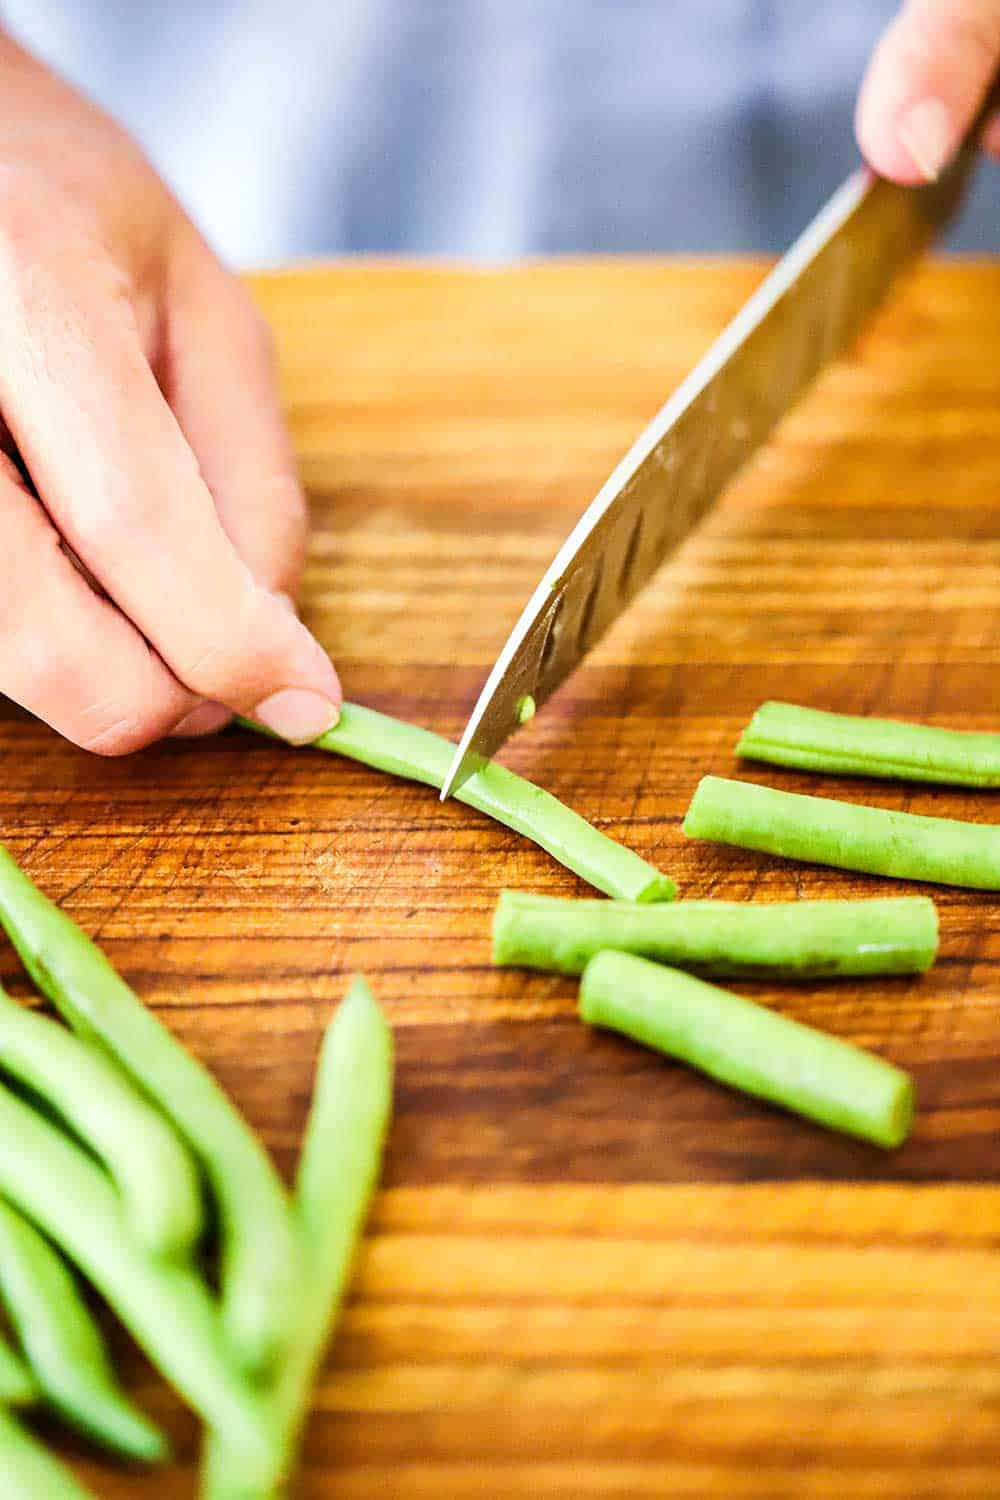 One hand holding a fresh green bean on a cutting board while the other hand uses a large knife to cut it in half.